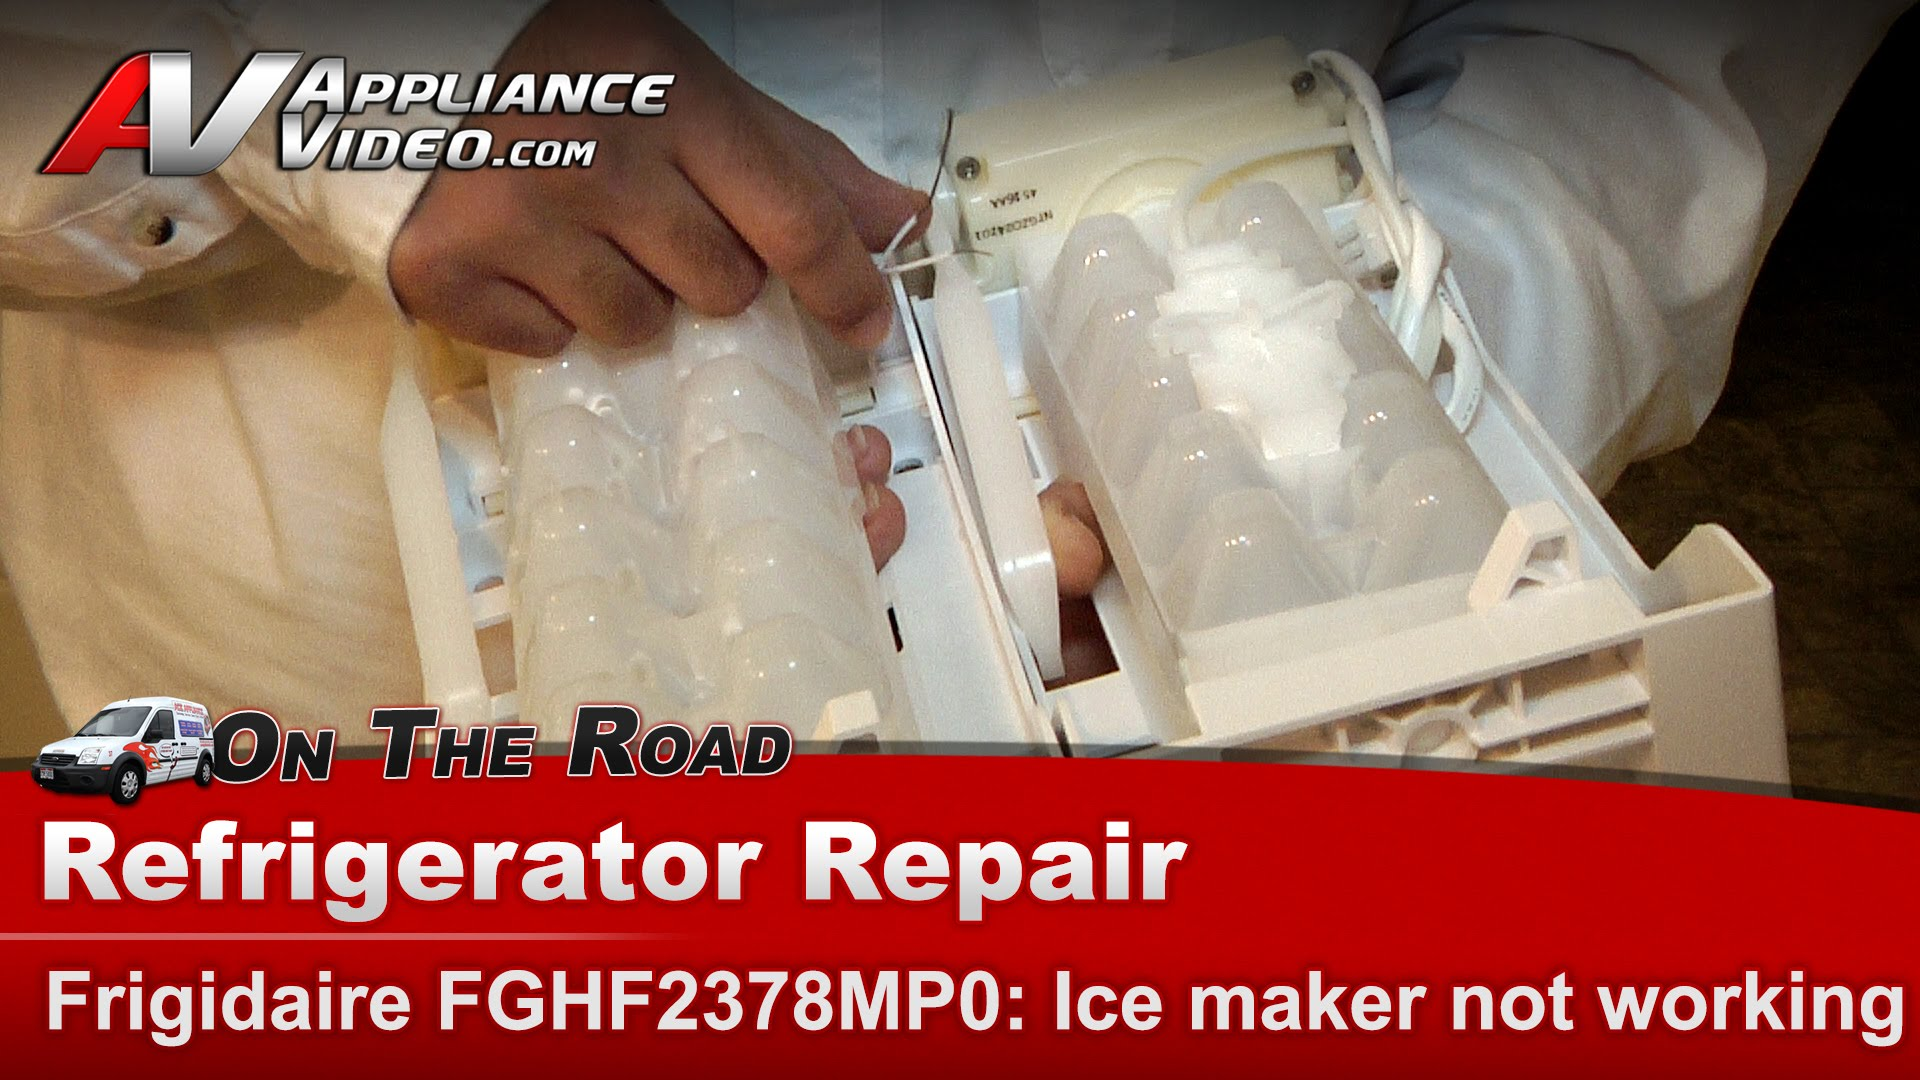 Frigidaire FGHF2378MP0 Refrigerator Repair – Ice Maker Not Working |  Appliance Video